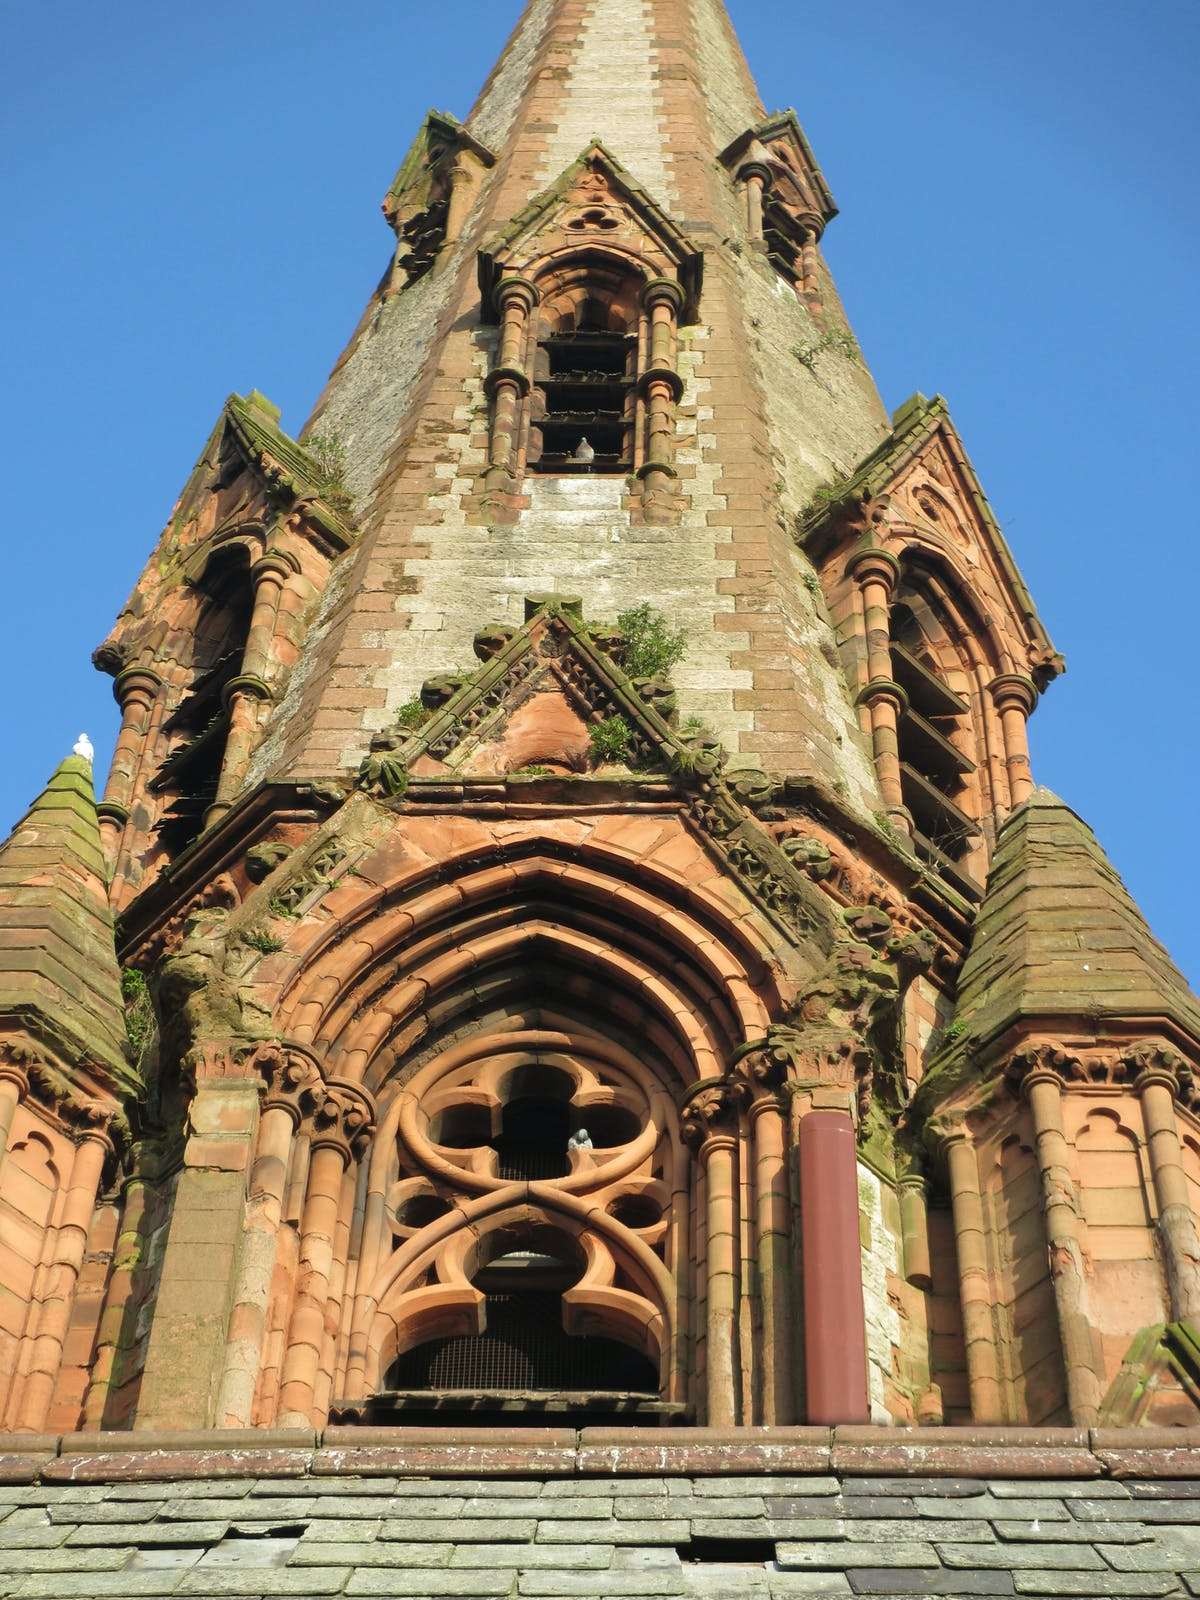 Carlisle Memorial Church